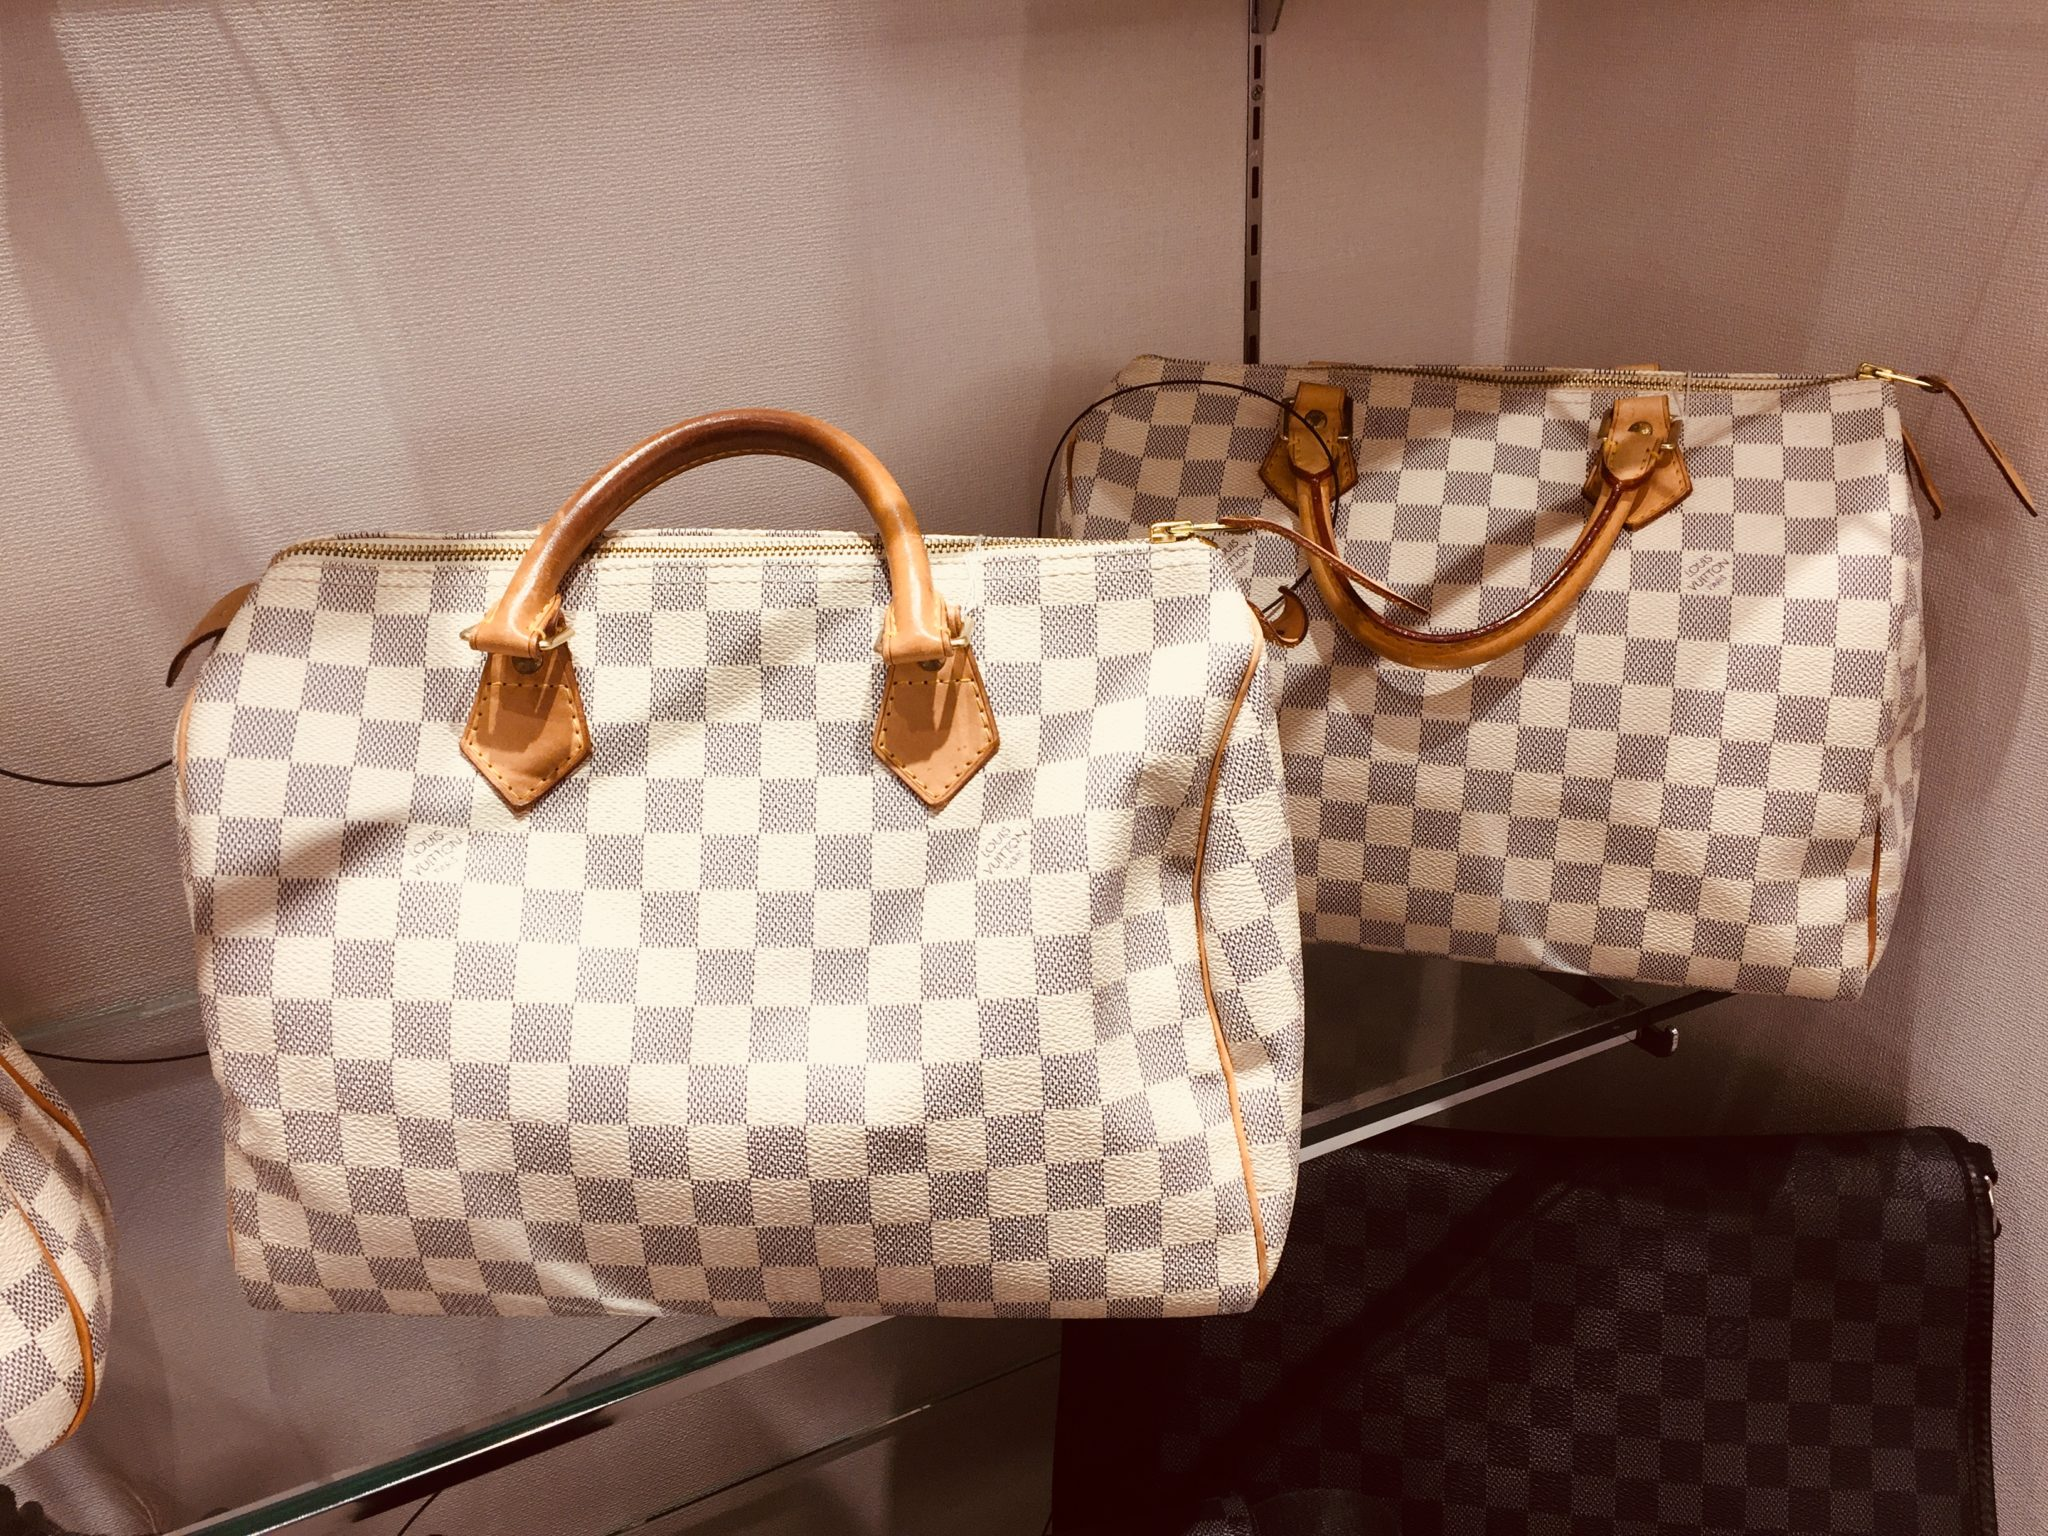 best service 76d0b ea5fd 盛岡 ルイヴィトン 販売】LOUIS VUITTON ダミエ・アズール ...